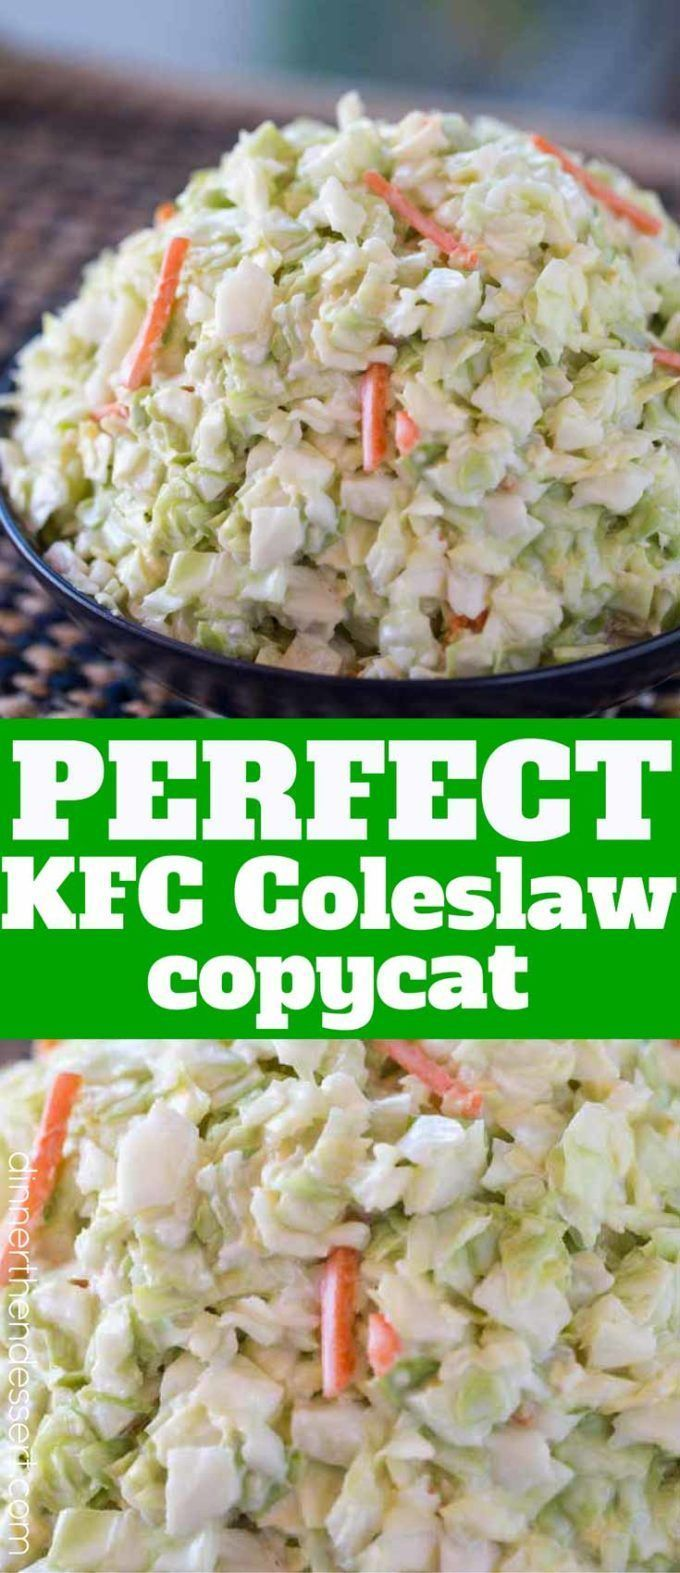 We Loved This Kfc Coleslaw It Tasted Exactly Like The Original Slaw Recipes Coleslaw Recipe Restaurant Recipes